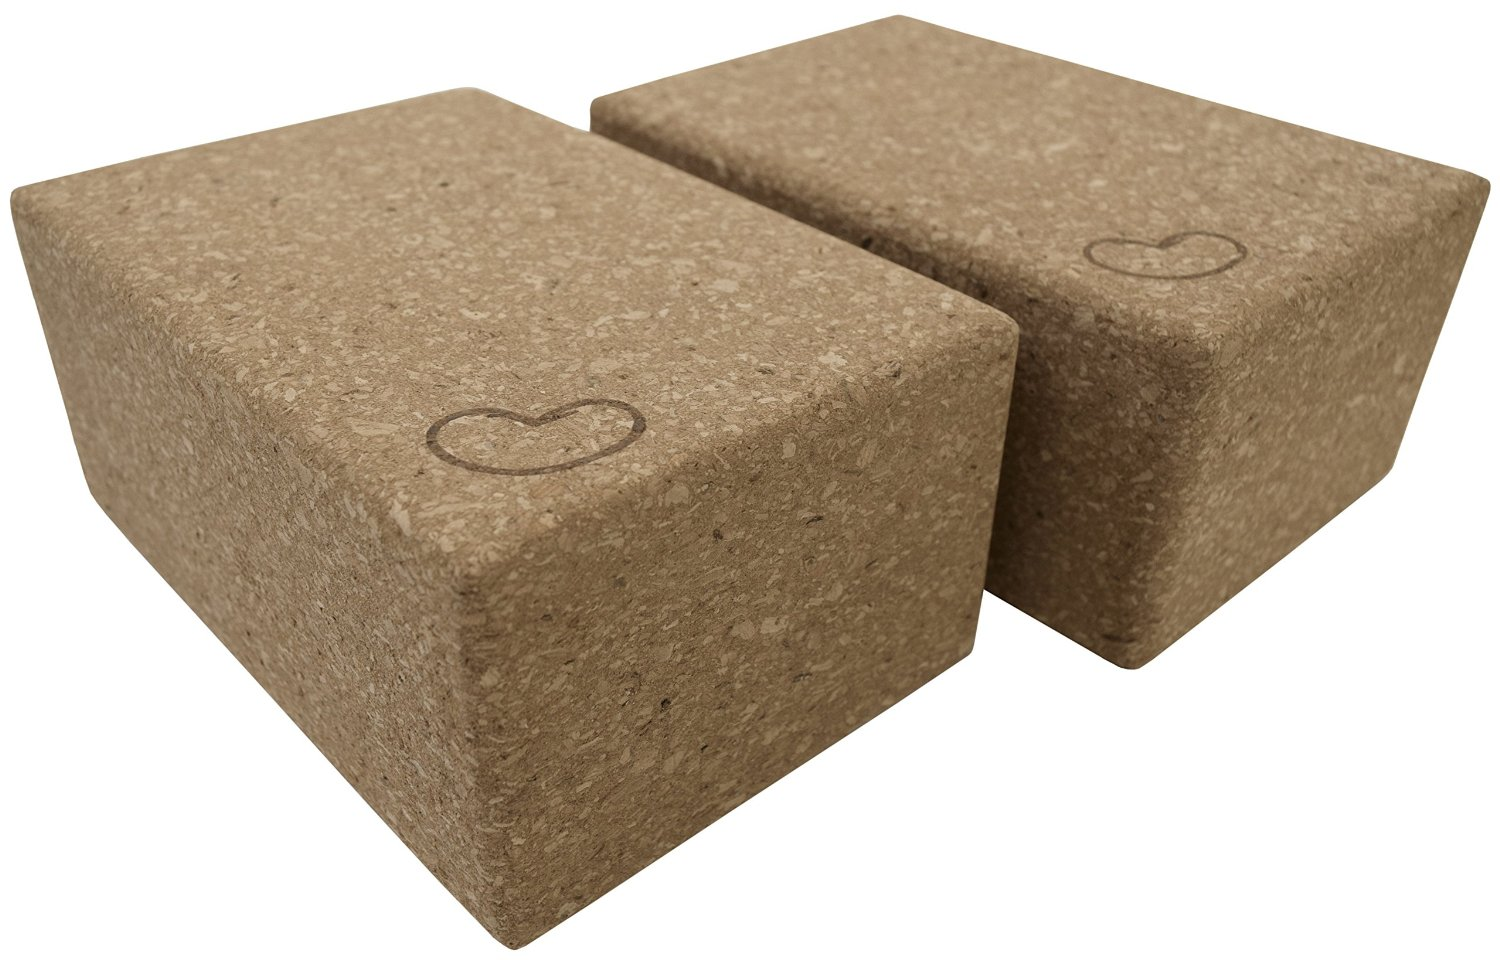 Cork Yoga Blocks block saver pack by Bean Products